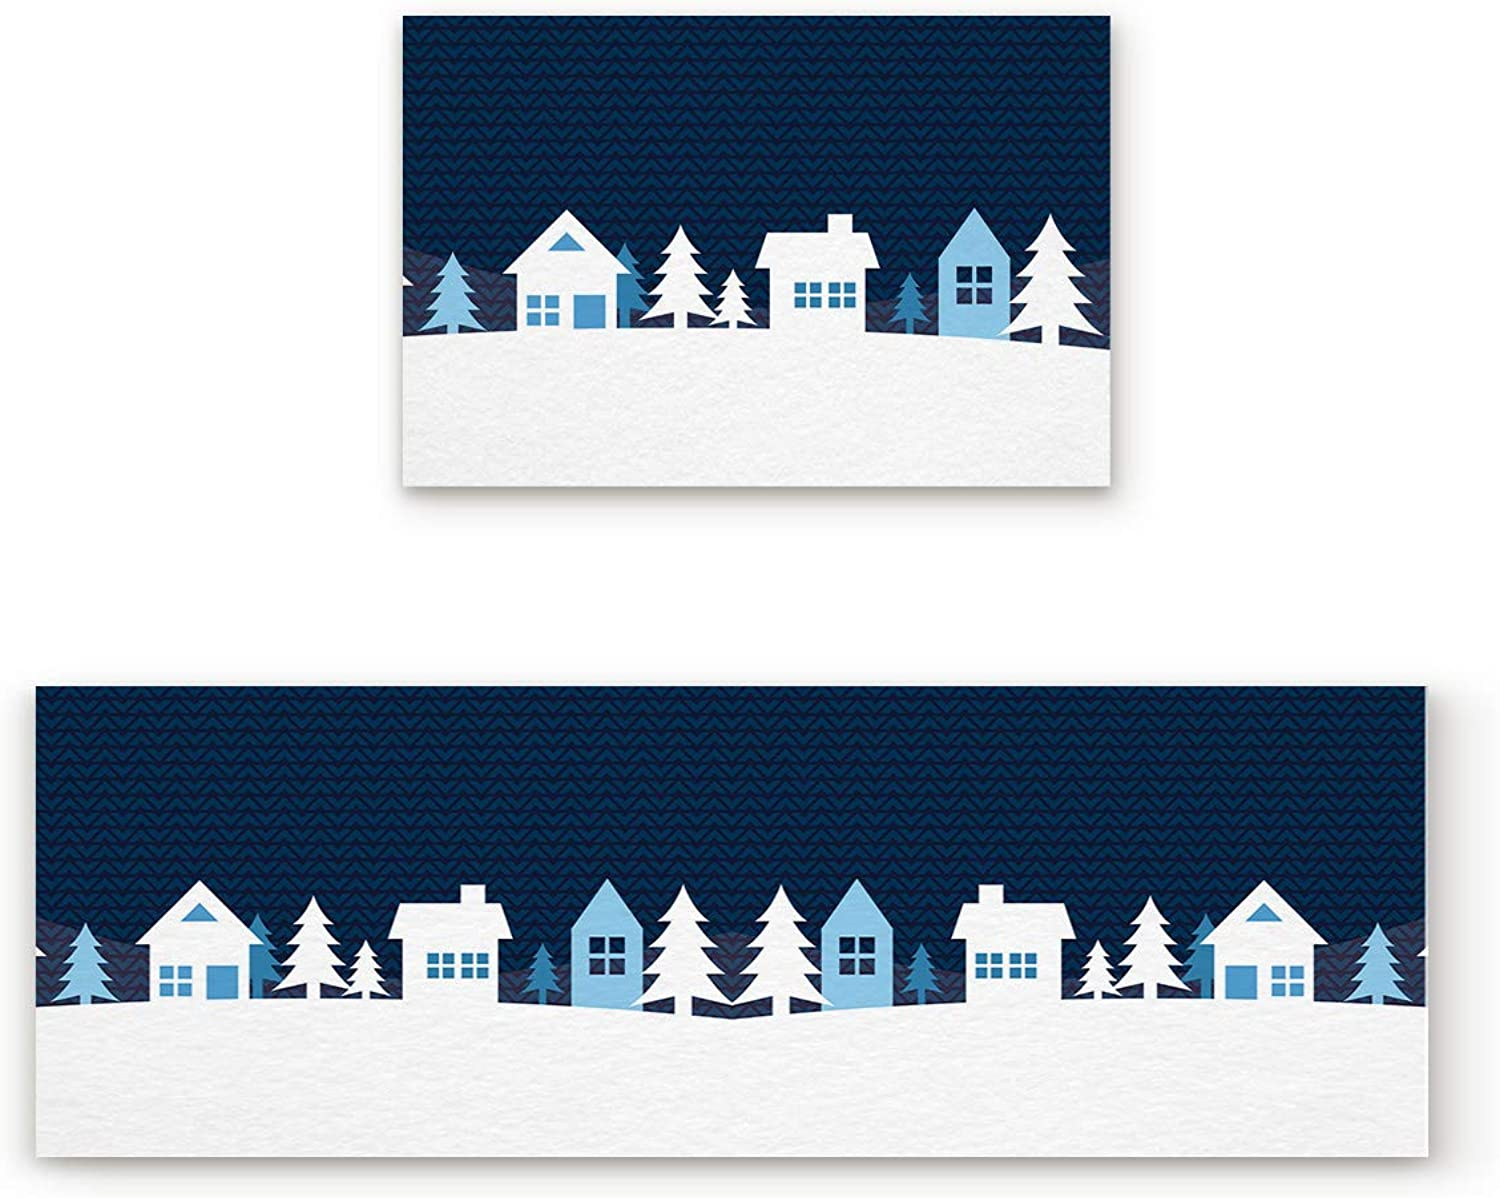 Aomike 2 Piece Non-Slip Kitchen Mat Rubber Backing Doormat Simple Winter House Runner Rug Set, Hallway Living Room Balcony Bathroom Carpet Sets (19.7  x 31.5 +19.7  x 63 )